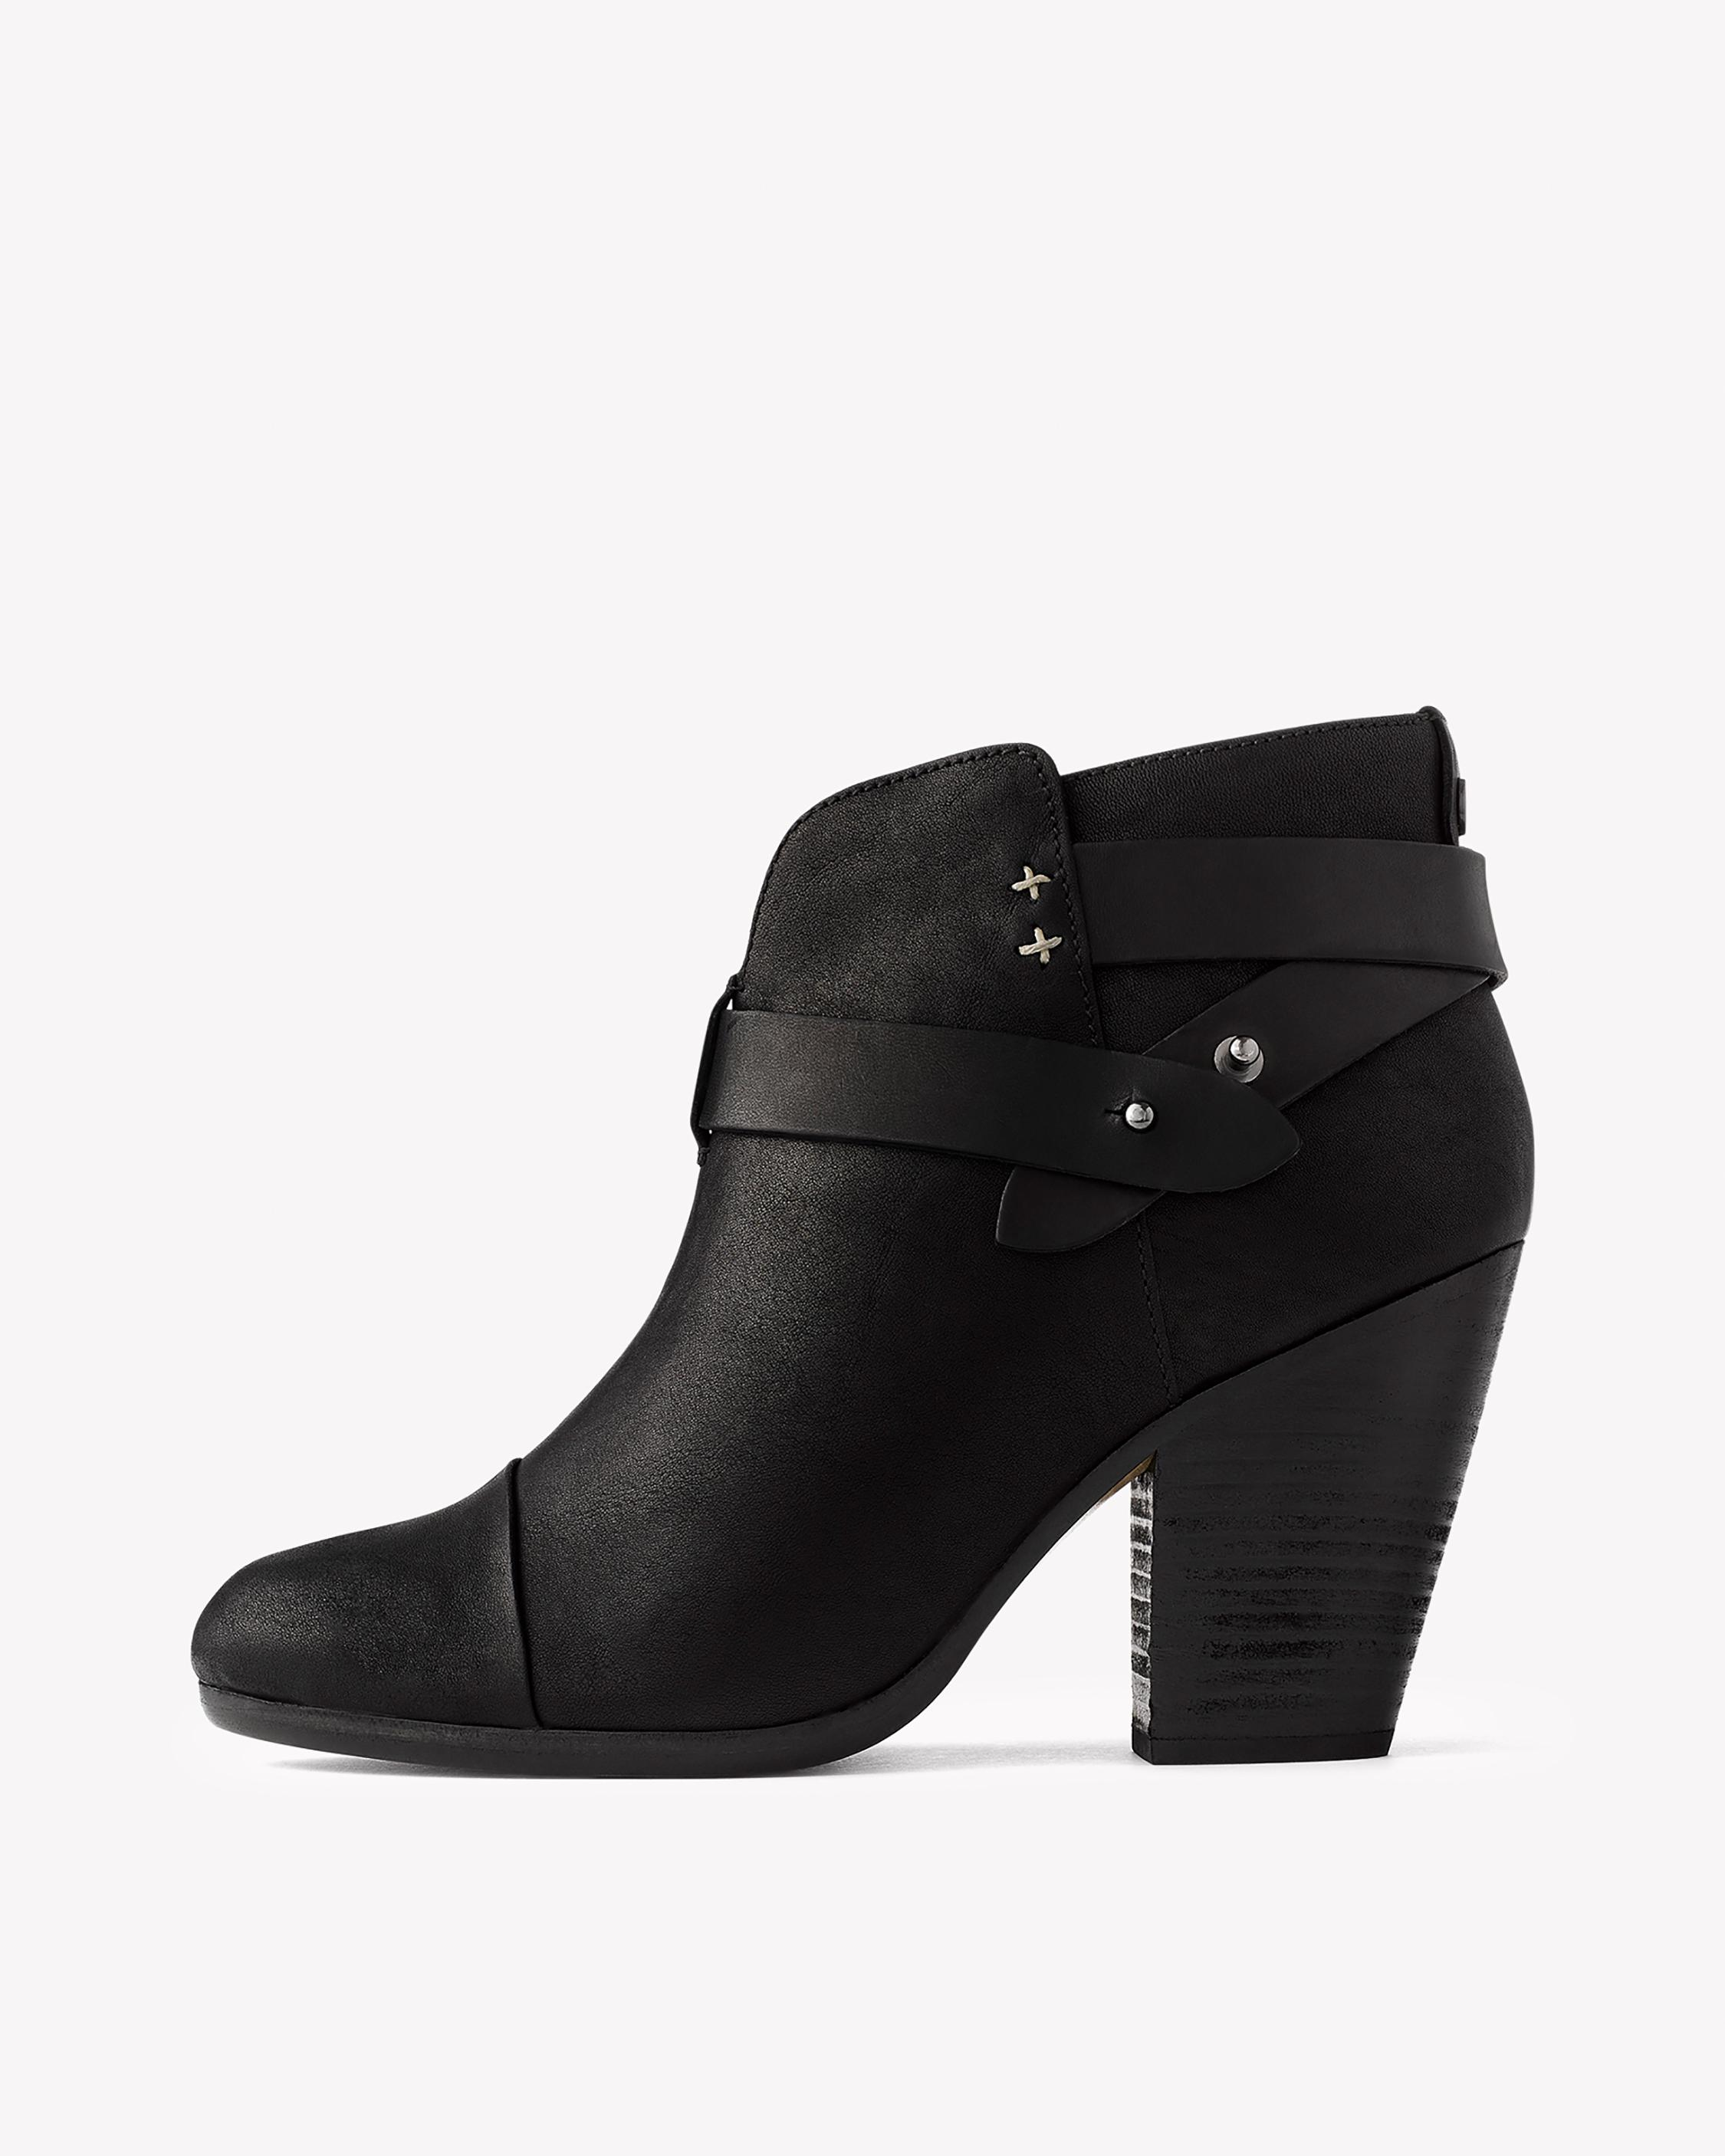 Rag & Bone Leather Peep-Toe Ankle Boots discount online under $60 cheap price buy cheap price d1LN16p5Y